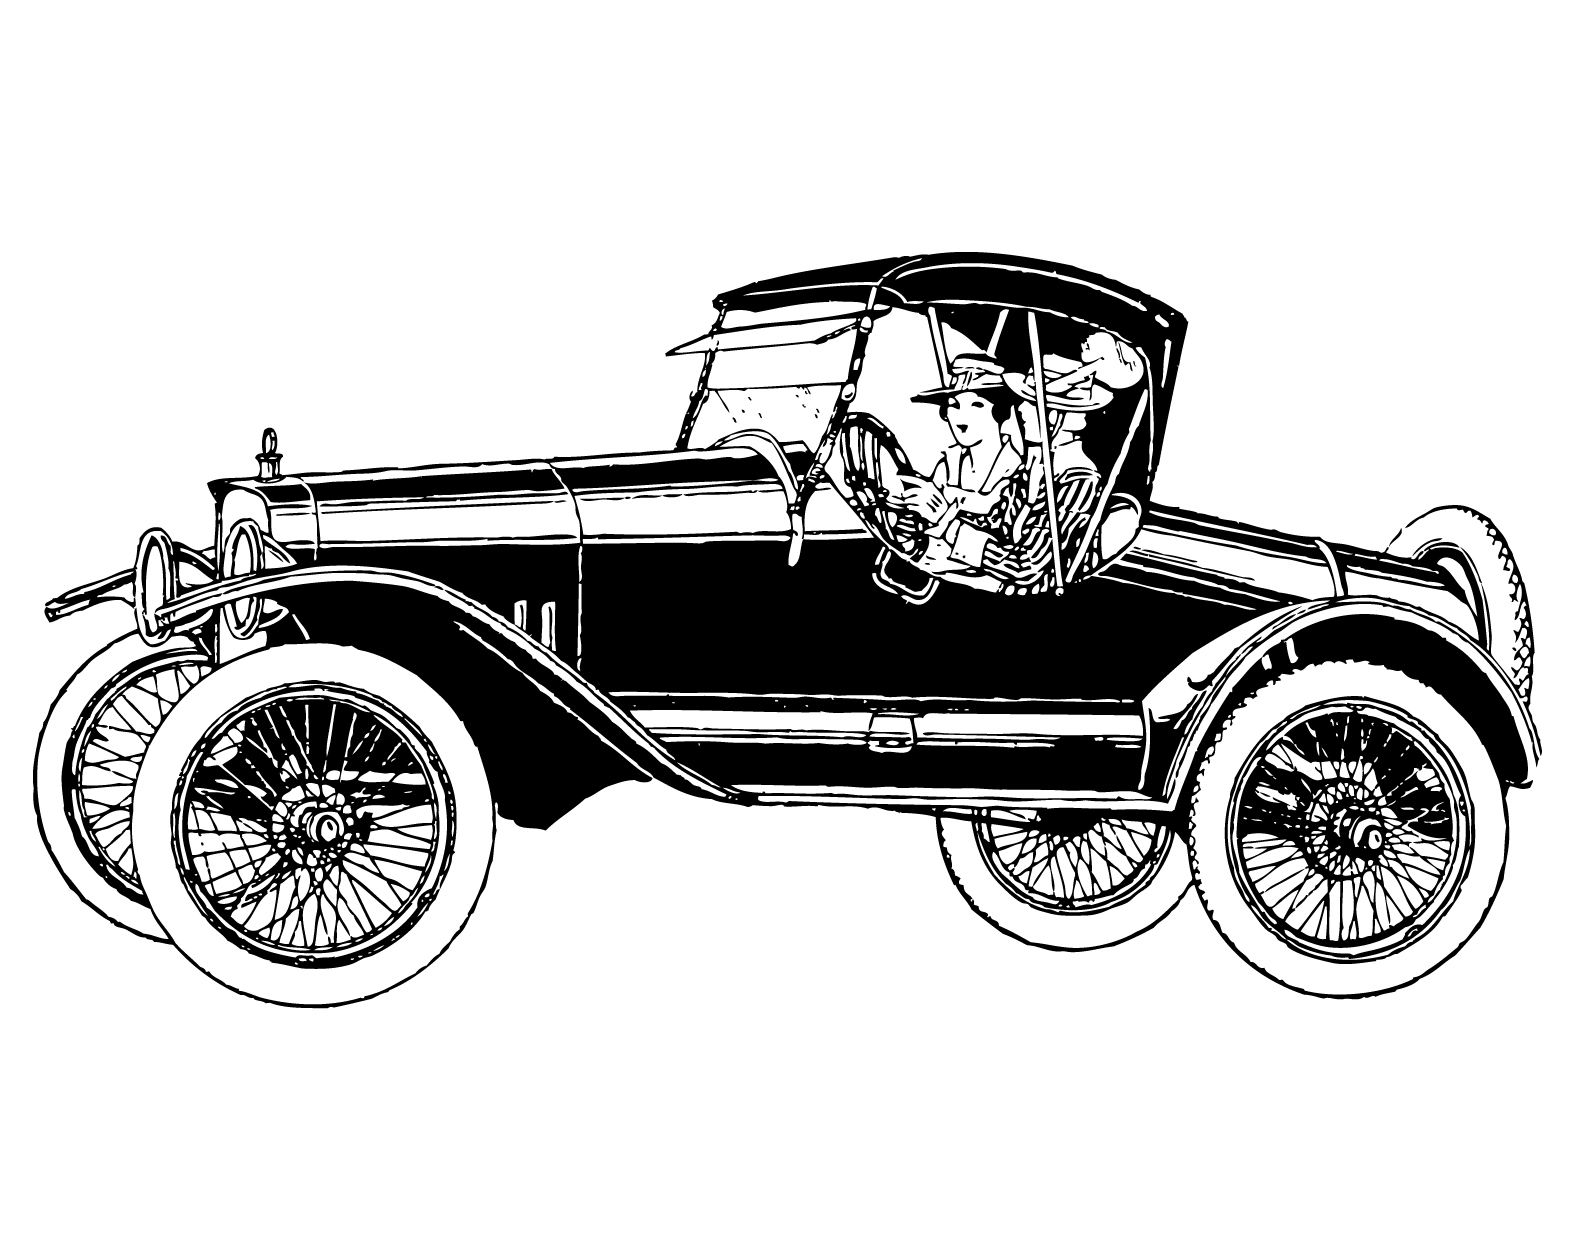 Classical clipart old fashioned car Scissors art Vintage on clip